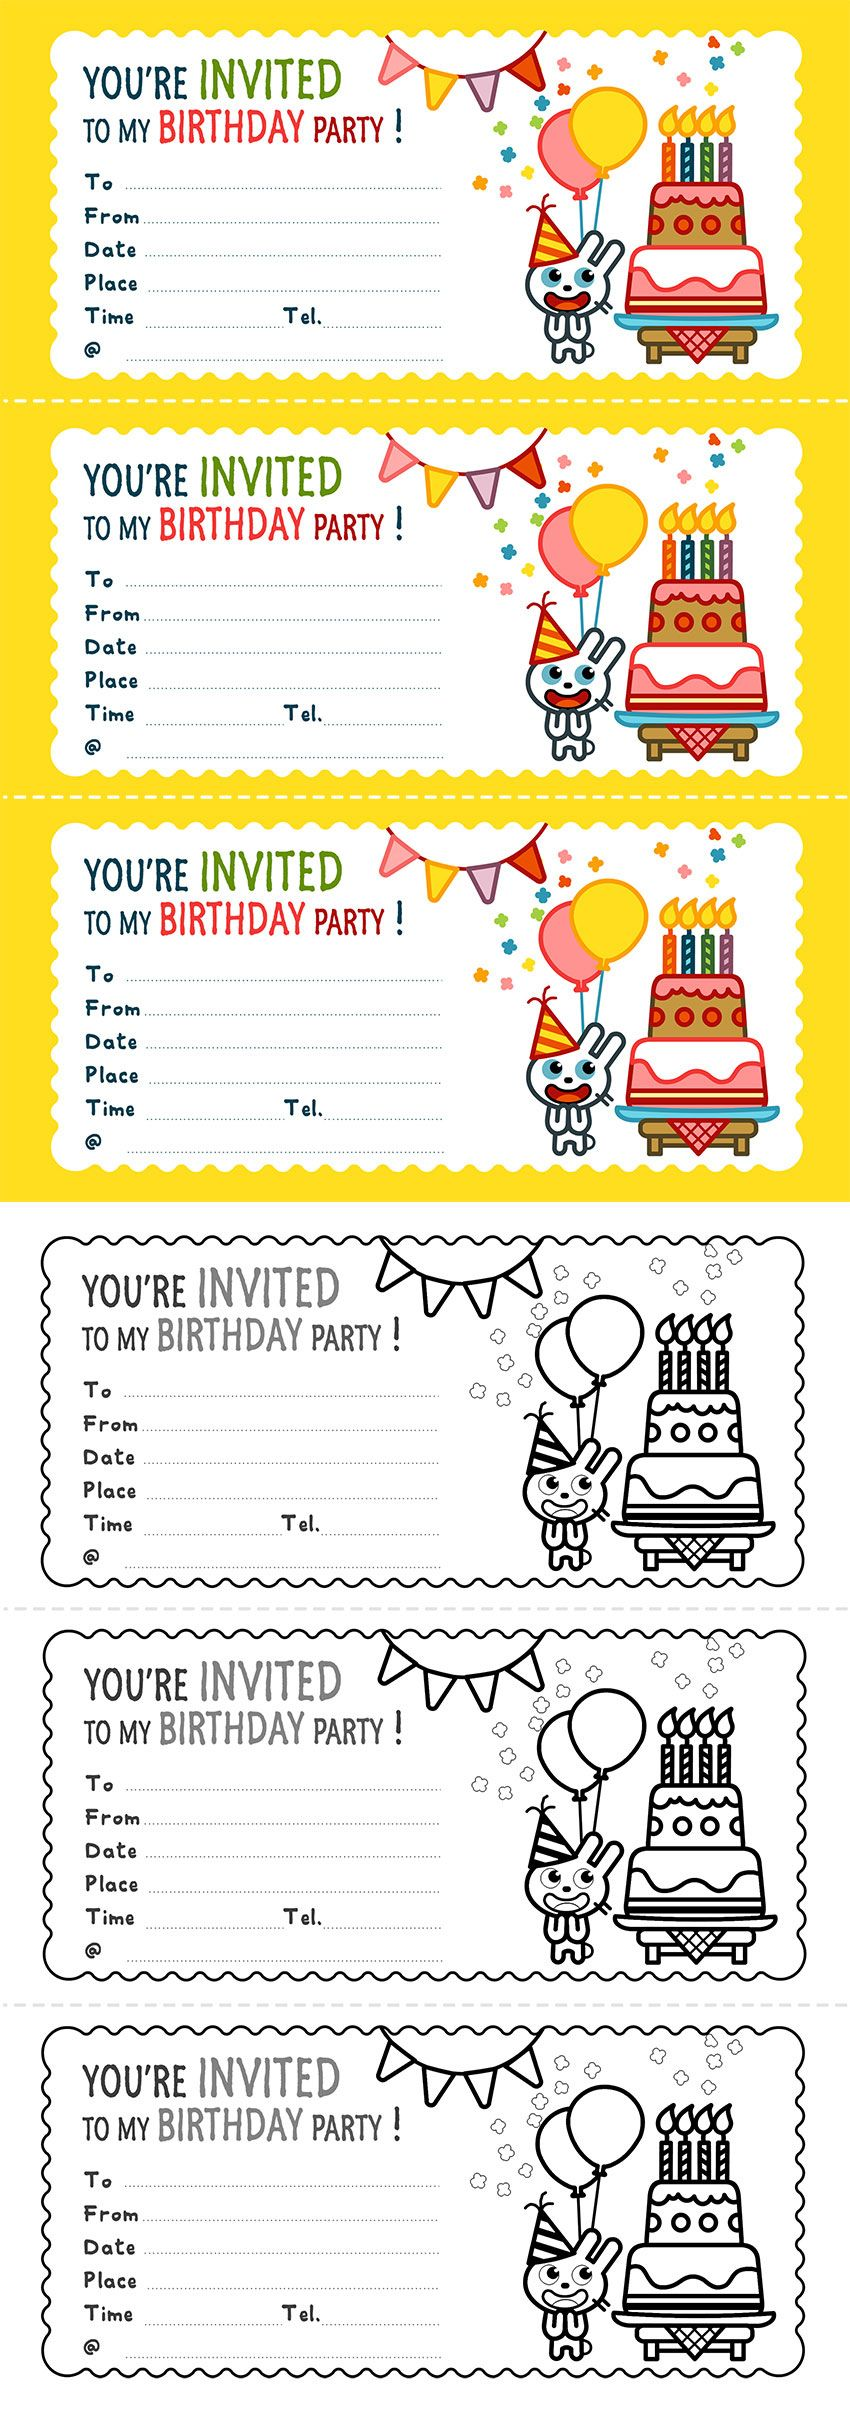 You Re Invited To My Birthday Party Invitation Card Card Invitation Birthday Printables Free Kids Printable Activities For Kids Free Printable Activities [ 2409 x 850 Pixel ]